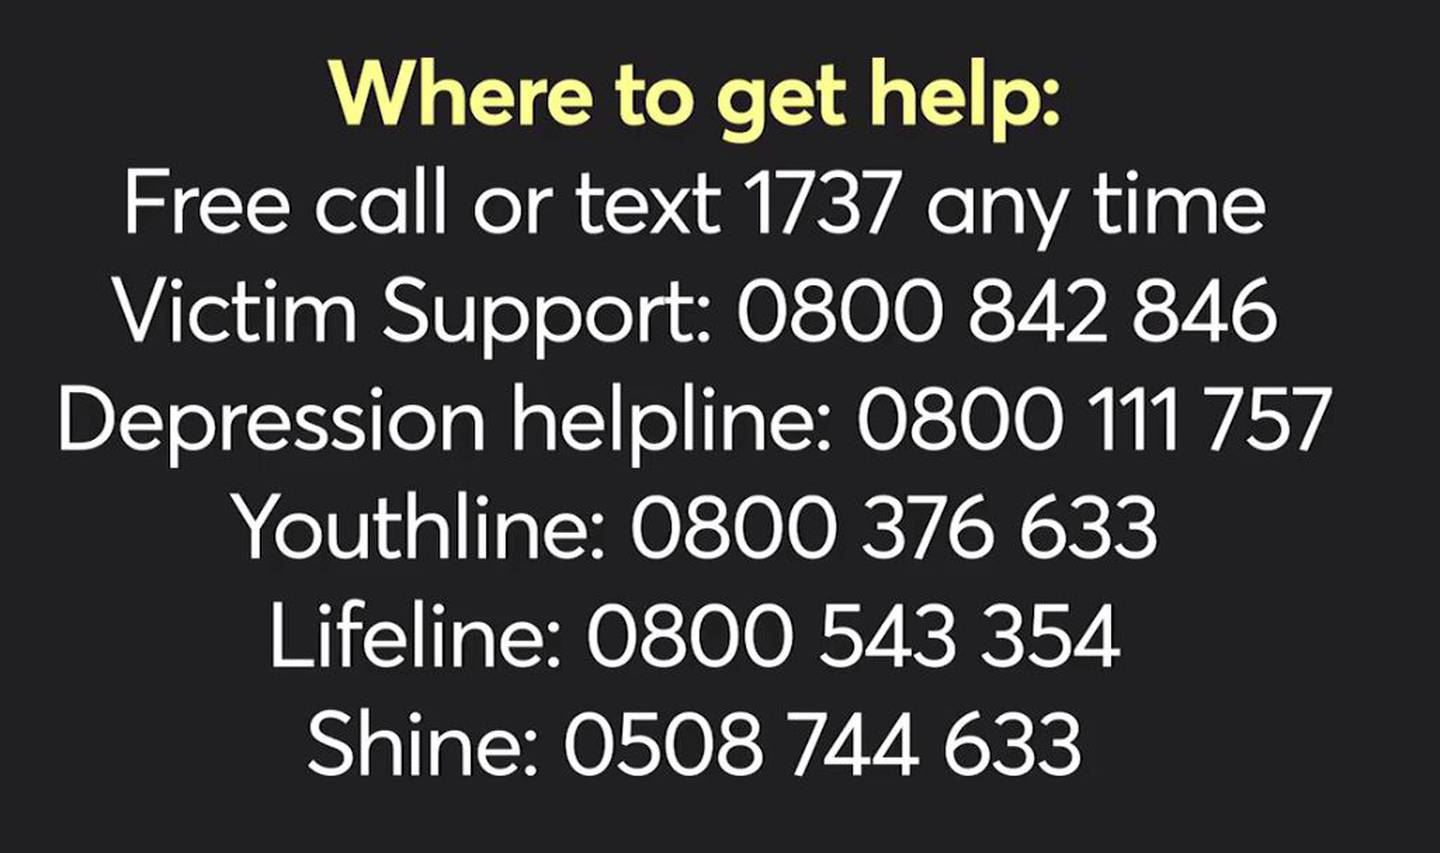 Where to get help, help, lines, helplines, suicide, numbers, number, call, support, get